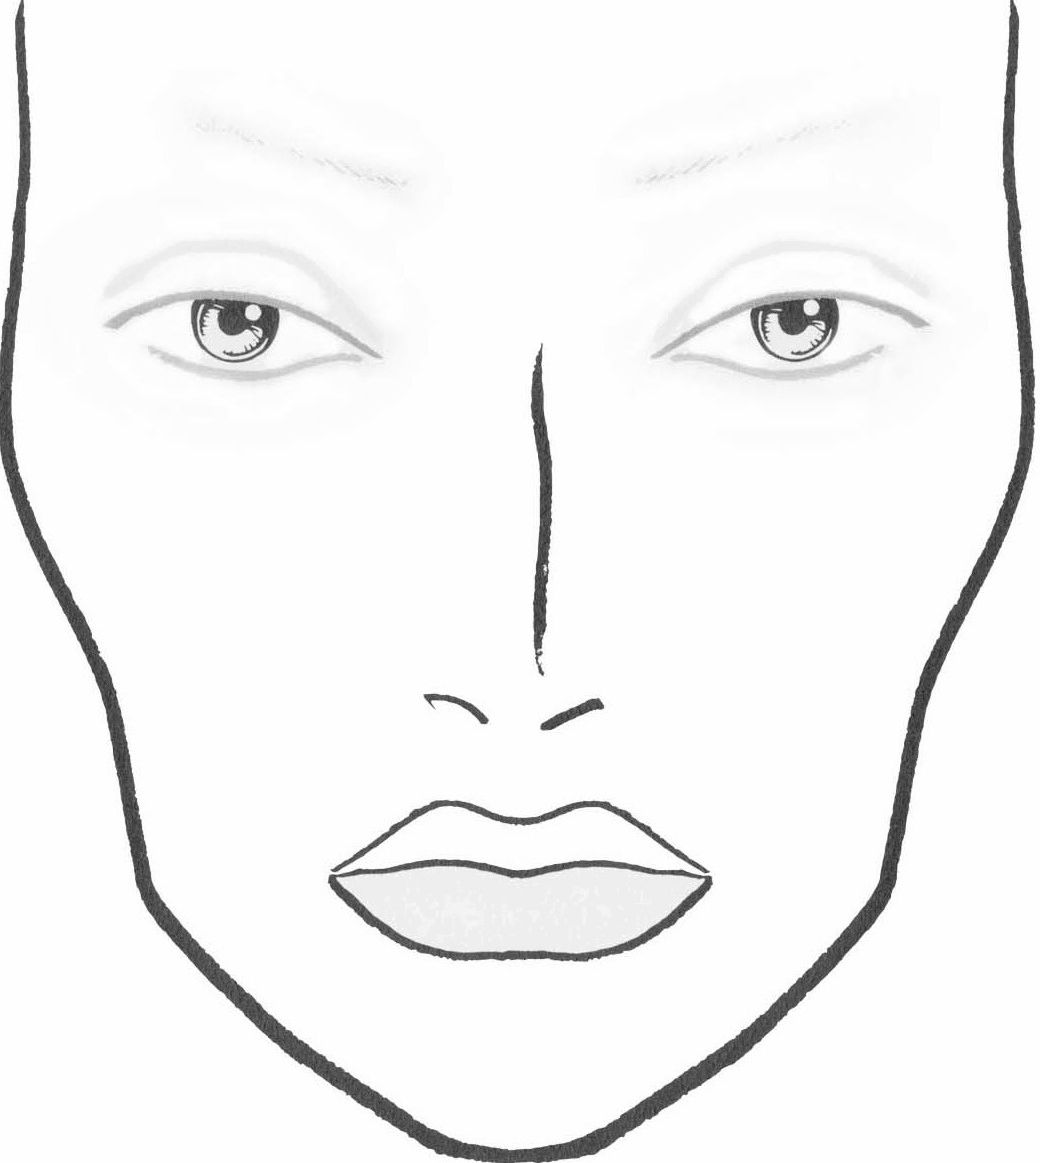 DIY Blank Makeup Face Charts (With Images)